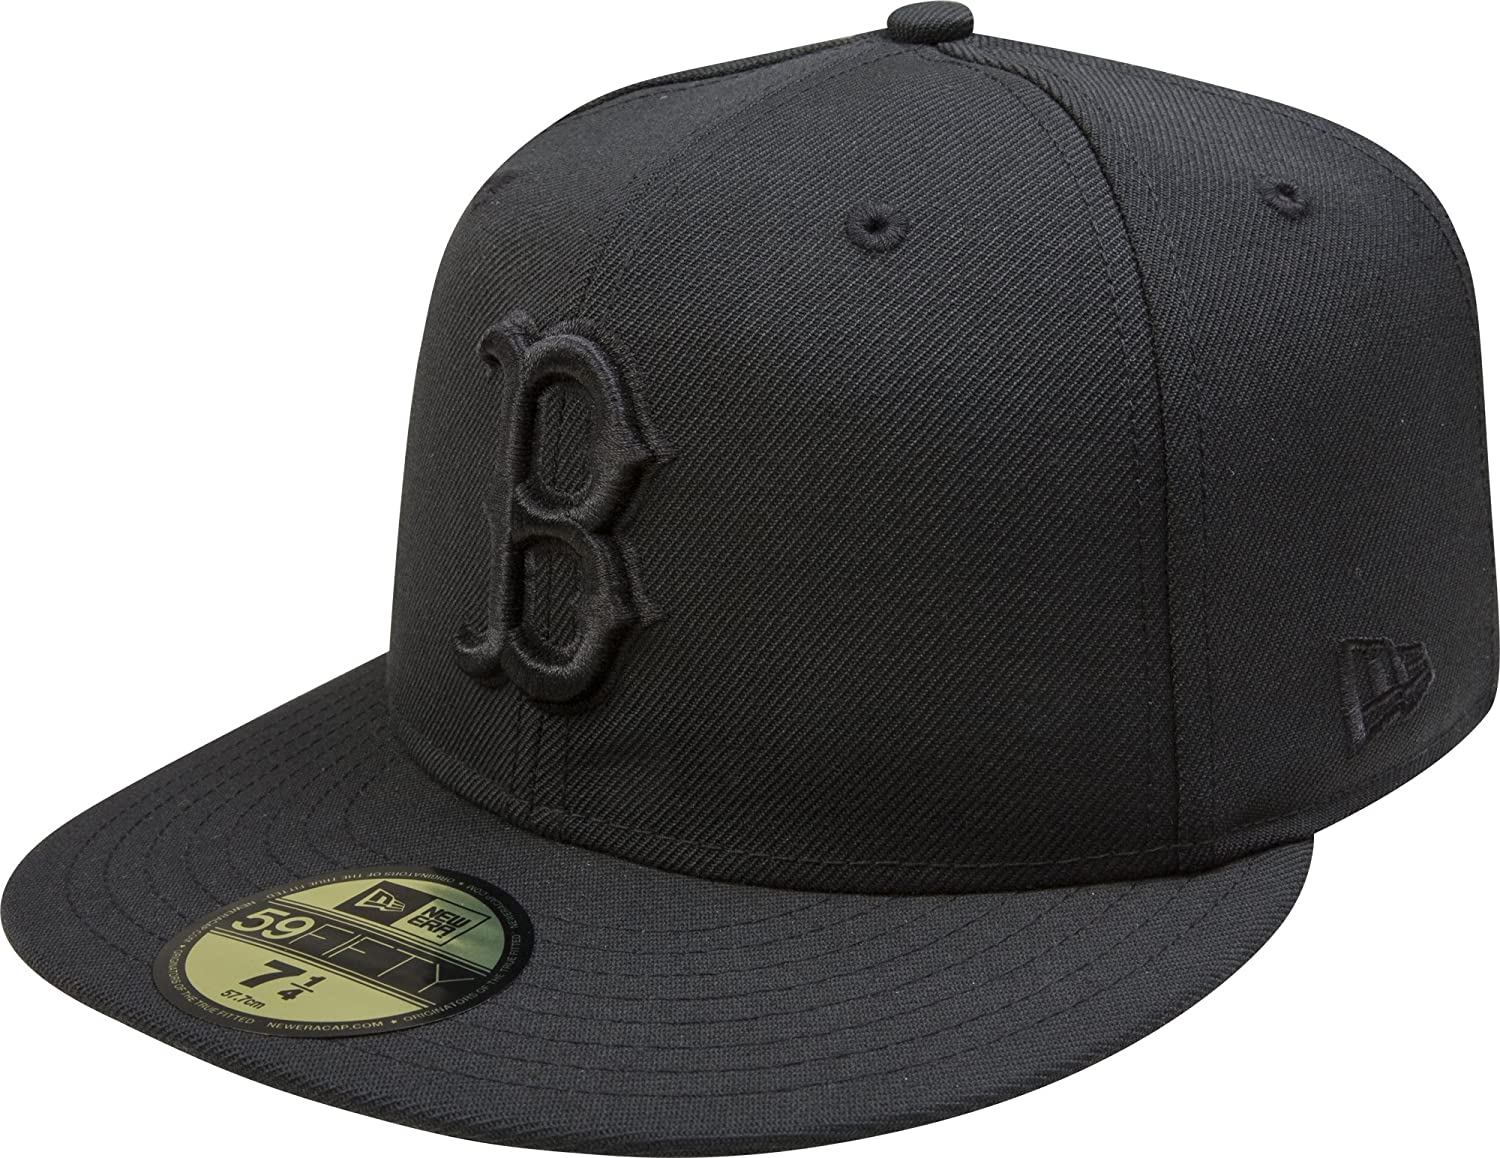 16f682a558397f Amazon.com: New Era Boston Red Sox Black On Black 59fifty Fitted Cap  Limited Edition: Sports & Outdoors